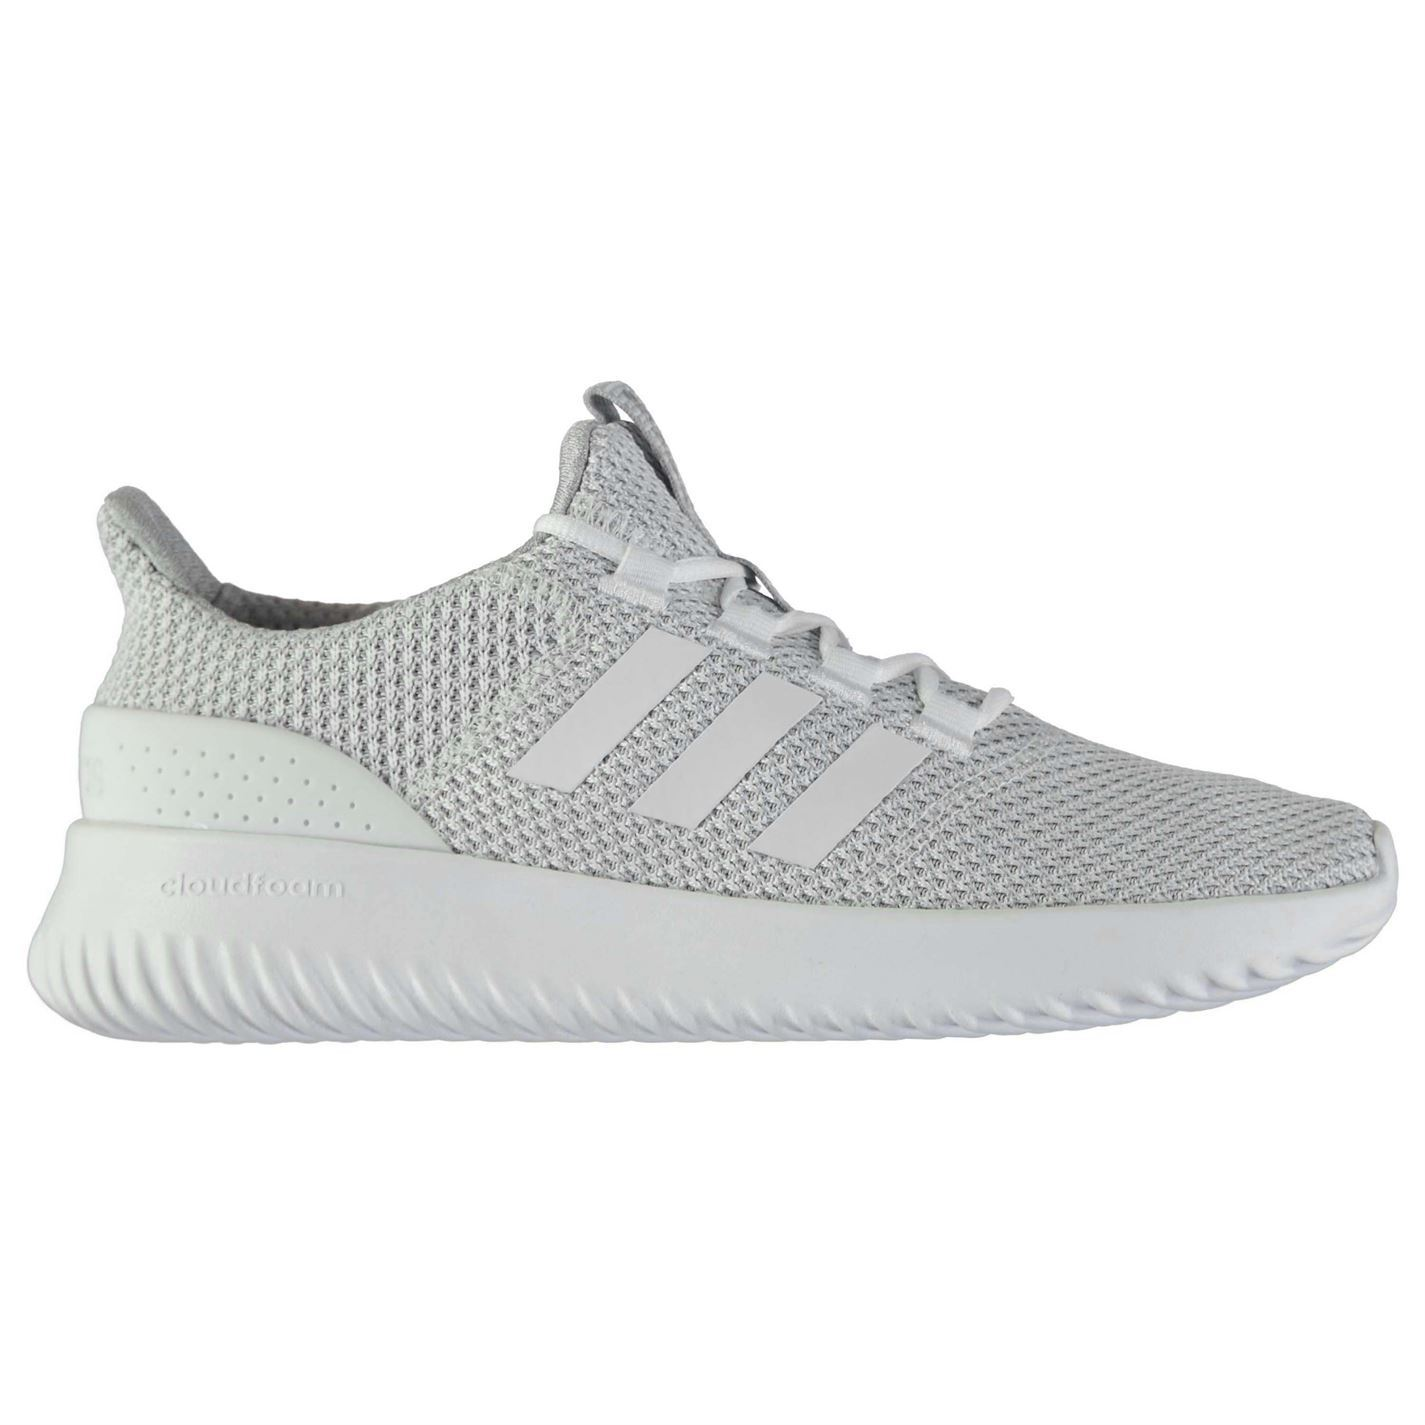 adidas cloudfoam ultimate mens